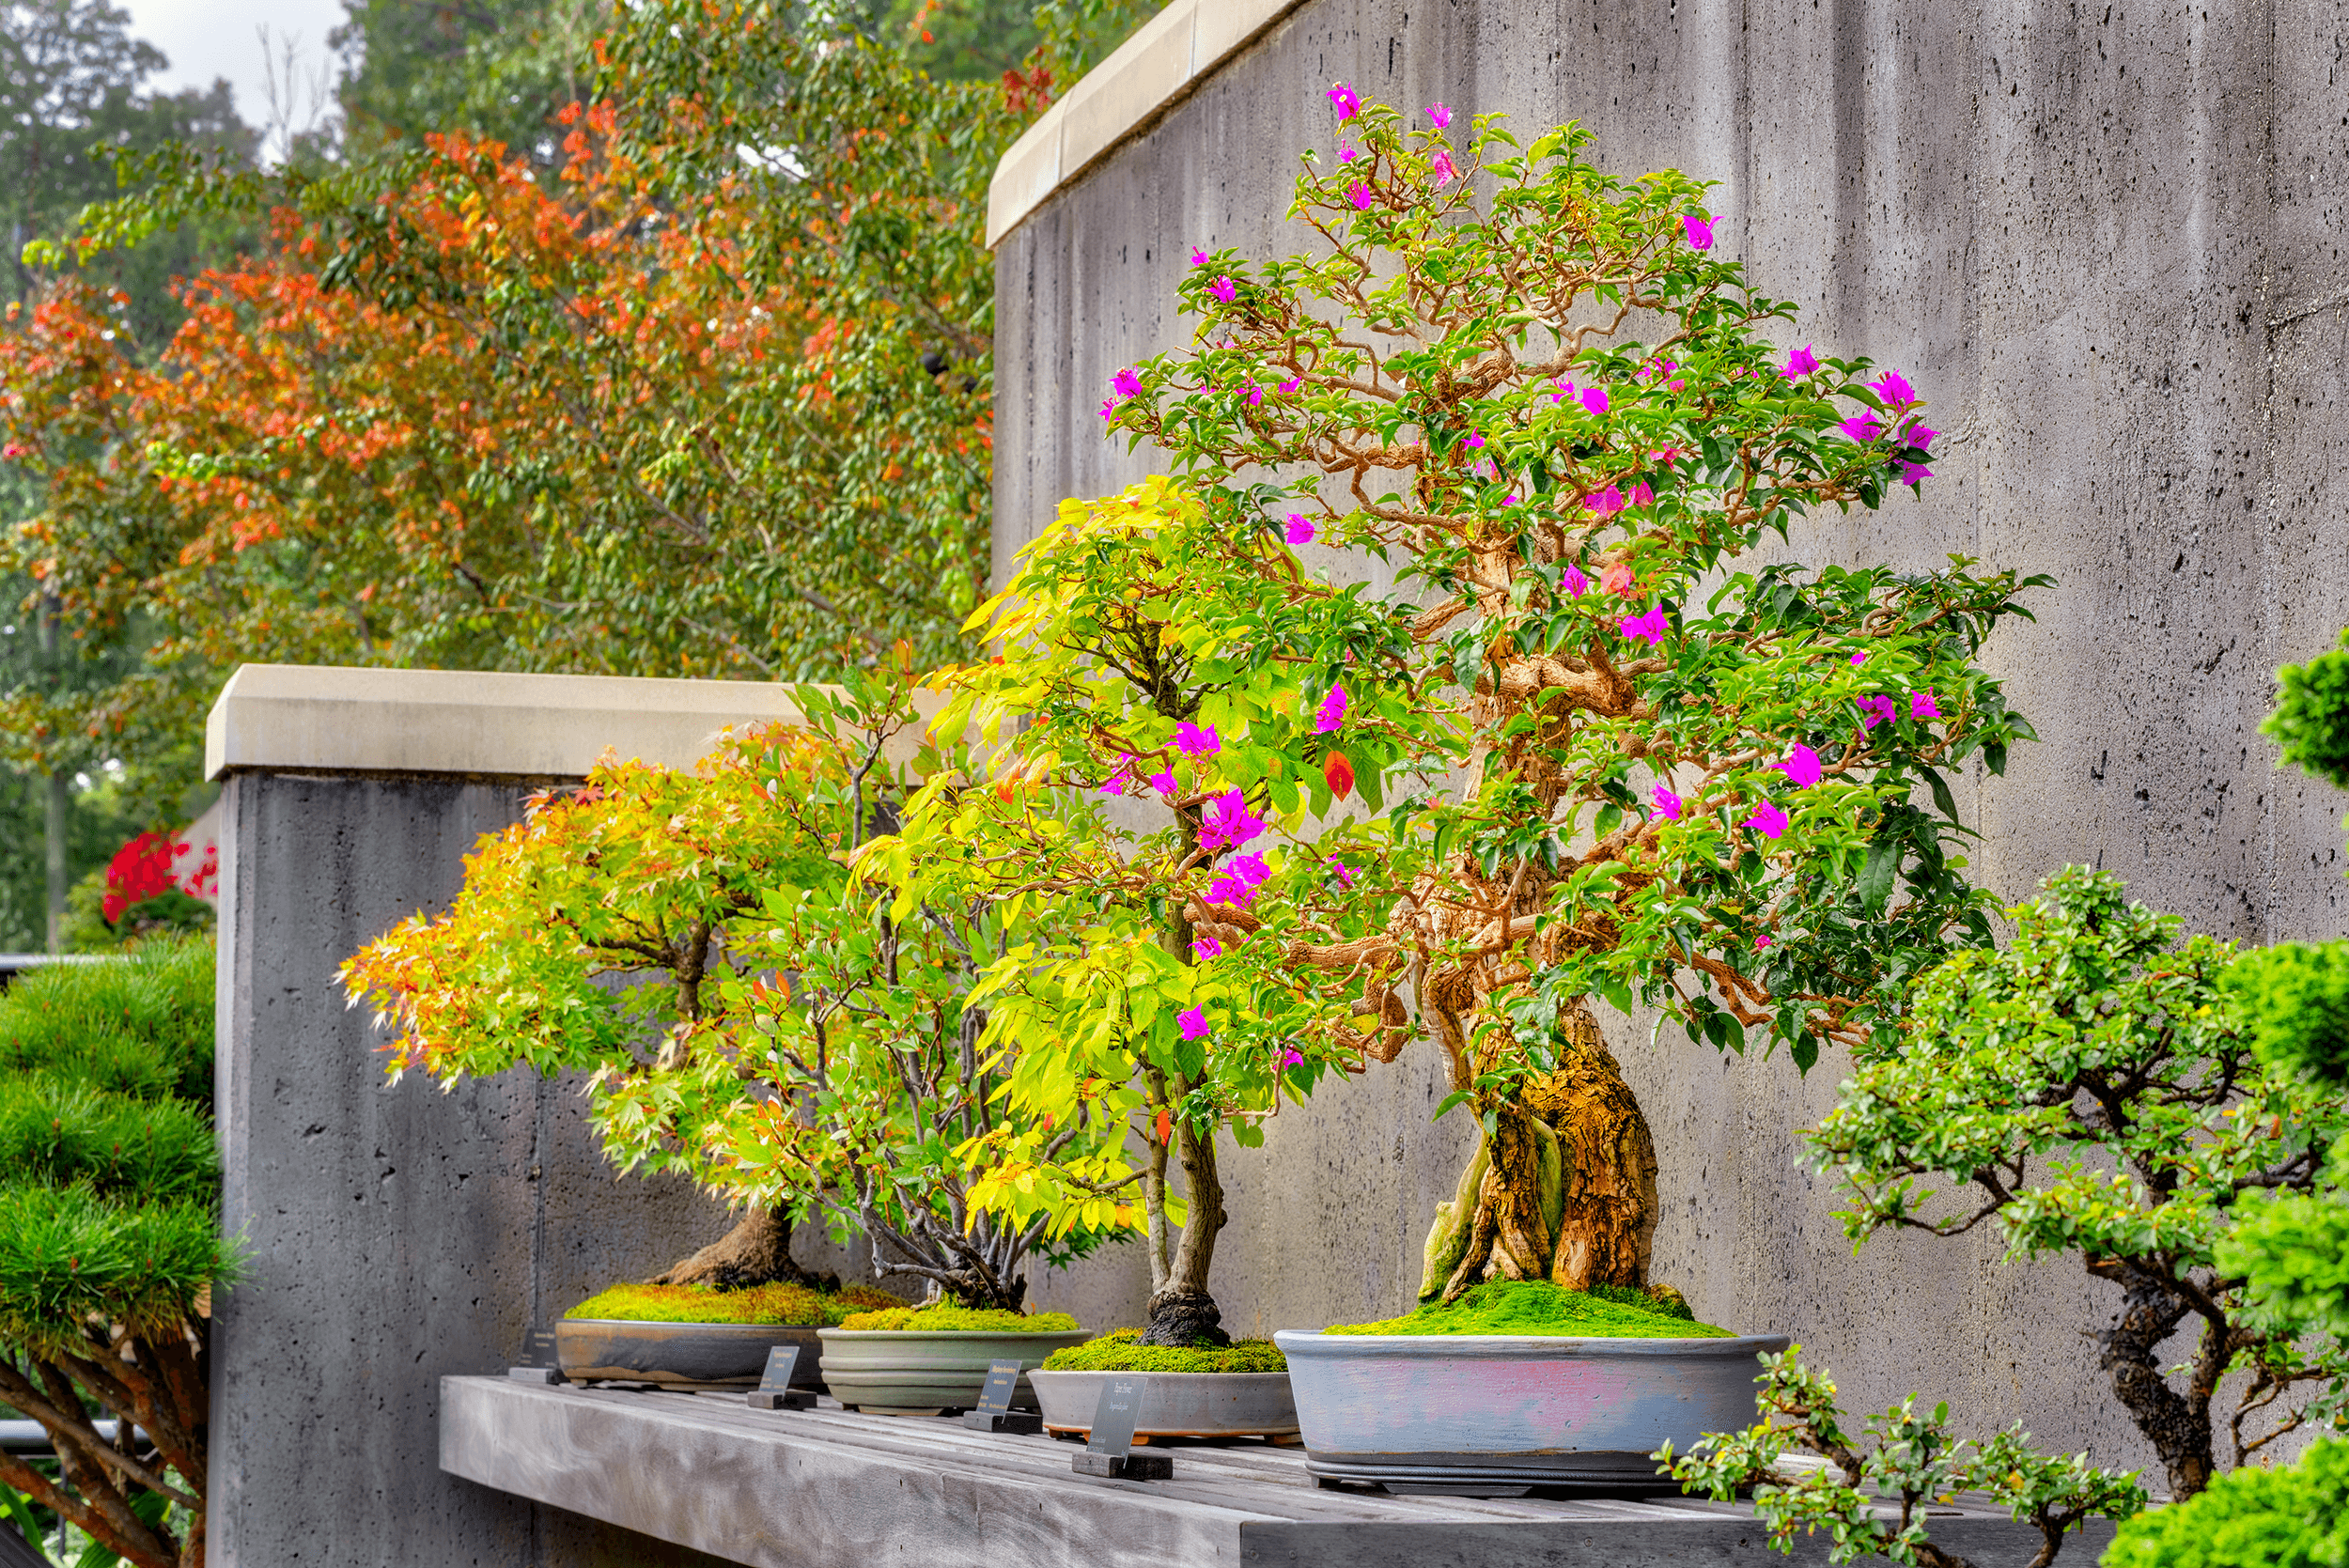 Usually, the age of the tree is given much focus in a bonsai collection. However, due to the many donations of the bonsai plants their age is mostly unknown. Therefore, the Arboretum focuses more on the artistic design and health of its bonsai specimens.